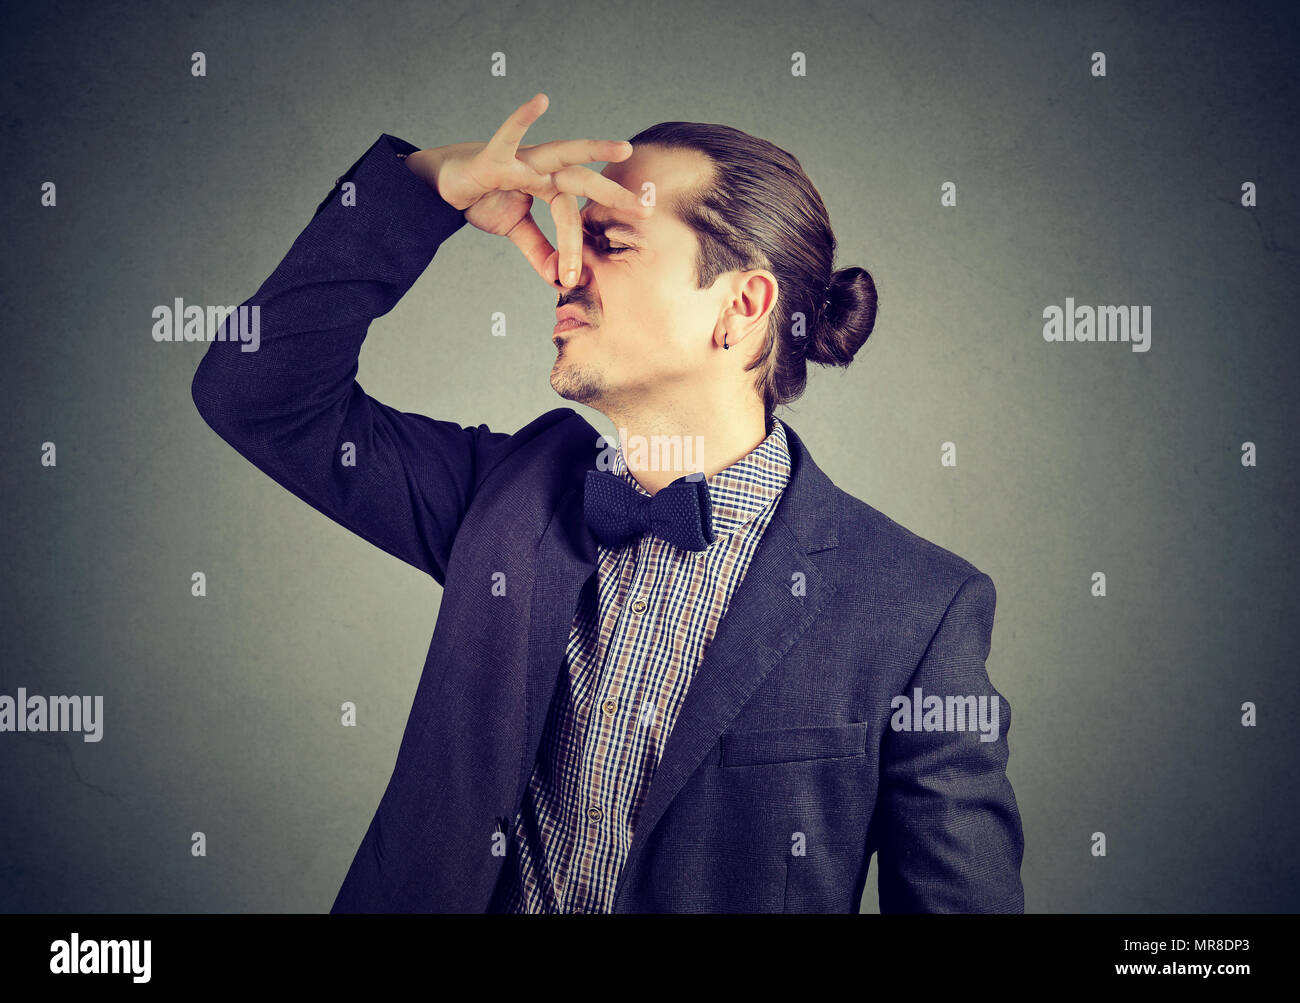 Disgusted man pinches nose with fingers looks with disgust something stinks bad smell isolated on wall background. Human face expression reaction - Stock Image